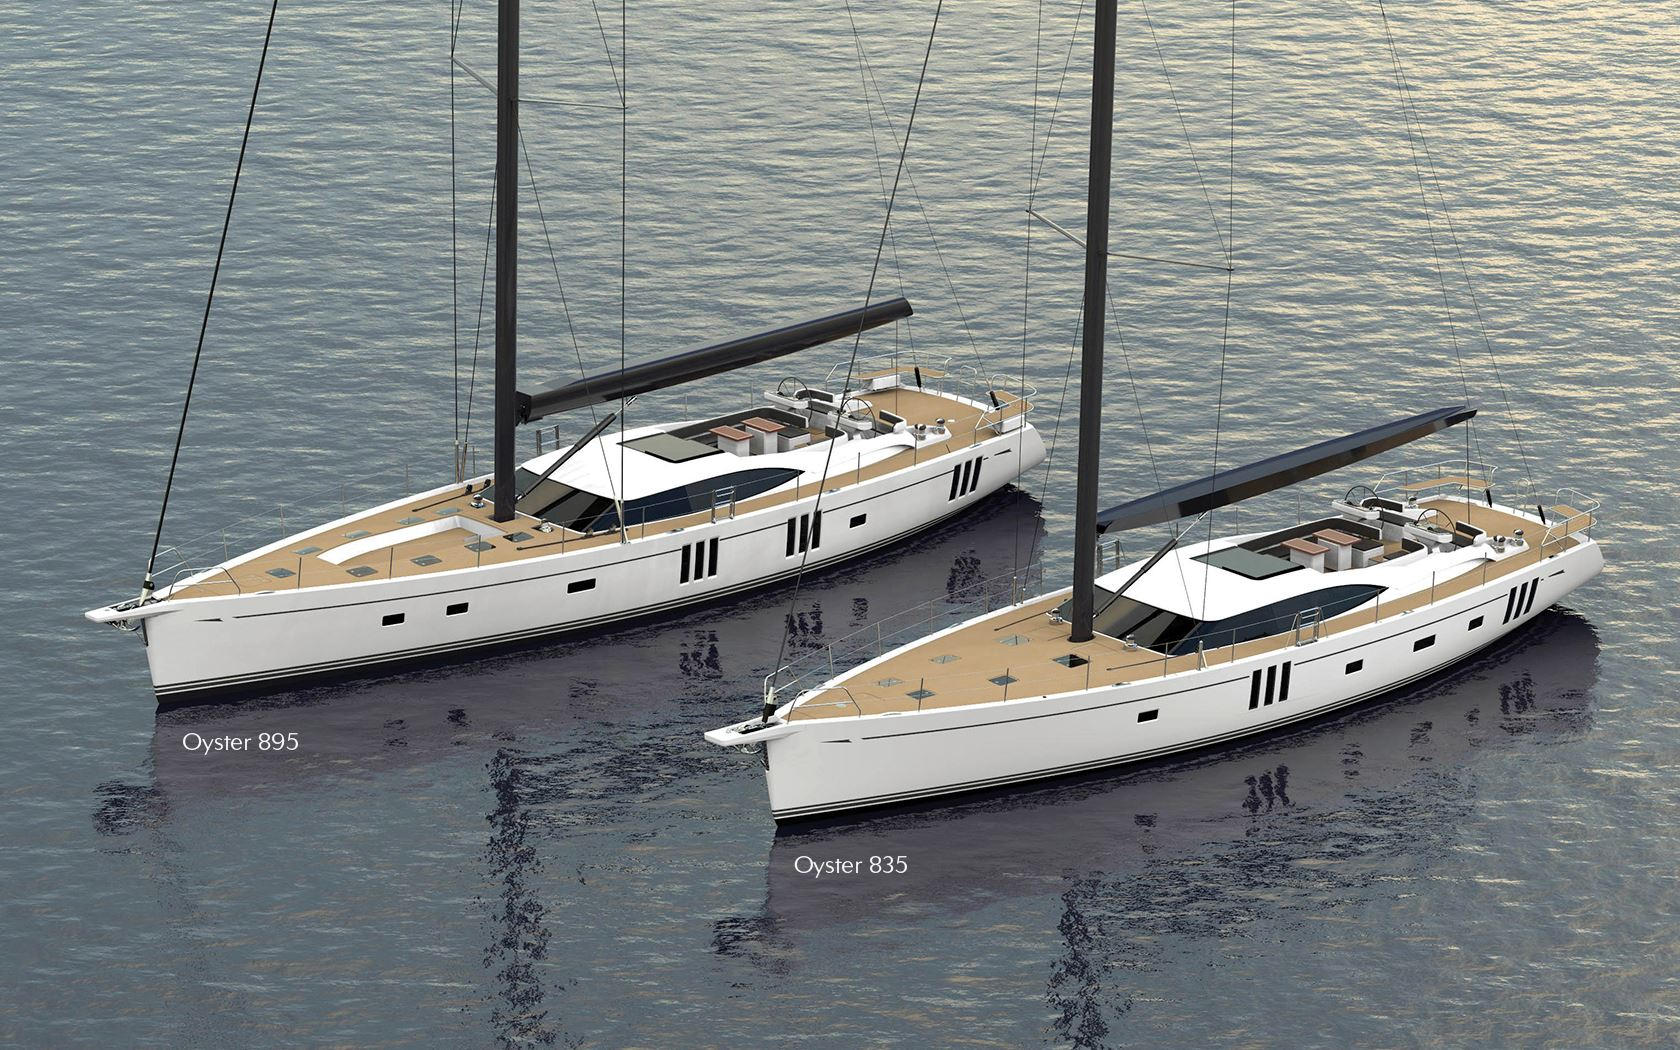 Pictures: Oyster releases first images of the new 835 and 895 - YBW